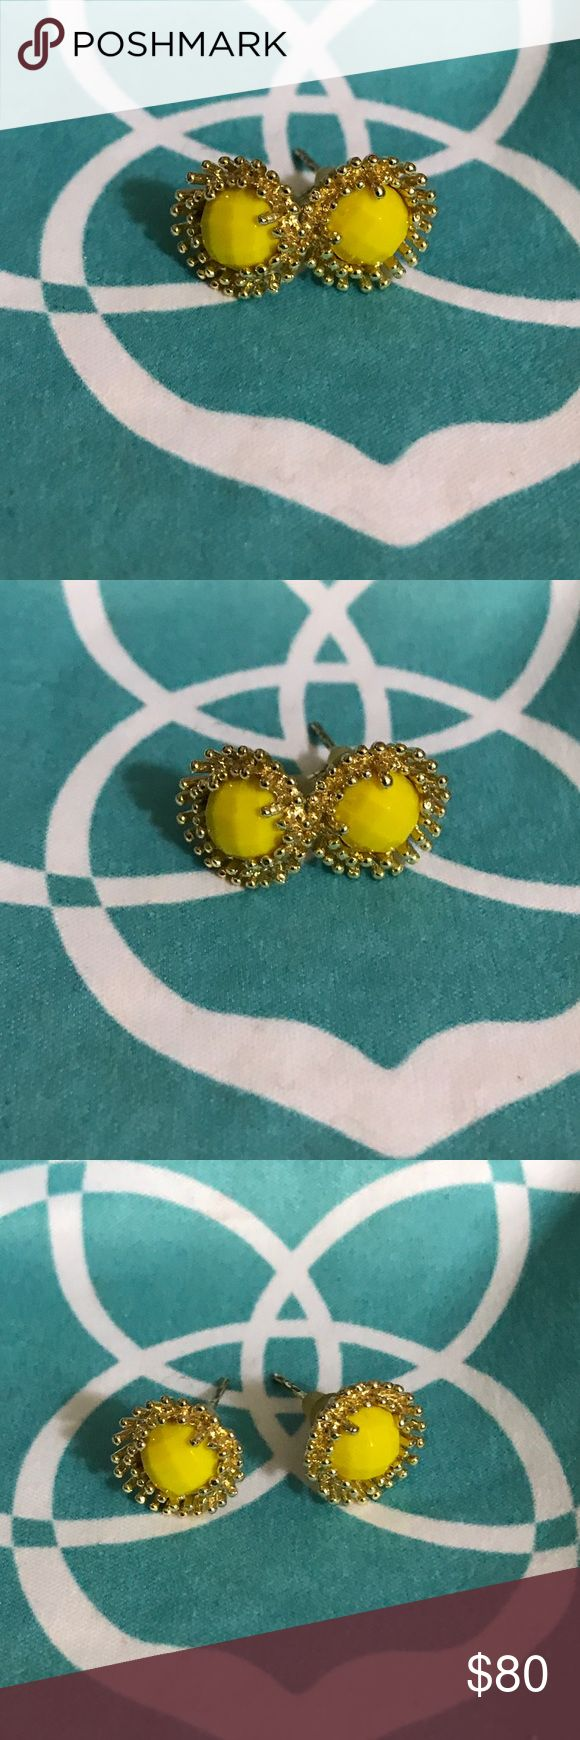 "*Rare* Kendra Scott yellow Carly stud earrings Kendra Scott yellow Carly stud earrings (non-custom). I would definitely not call these neon yellow but I really don't think they are mustard either. If there is an expert who wants to comment I would appreciate it. I think they are just plain ""yellow"". Excellent condition from the front, solid posts with some wear/tarnish that doesn't affect wear. Older rubber backs. These are extremely rare/HTF. FIRM Kendra Scott Jewelry Earrings"